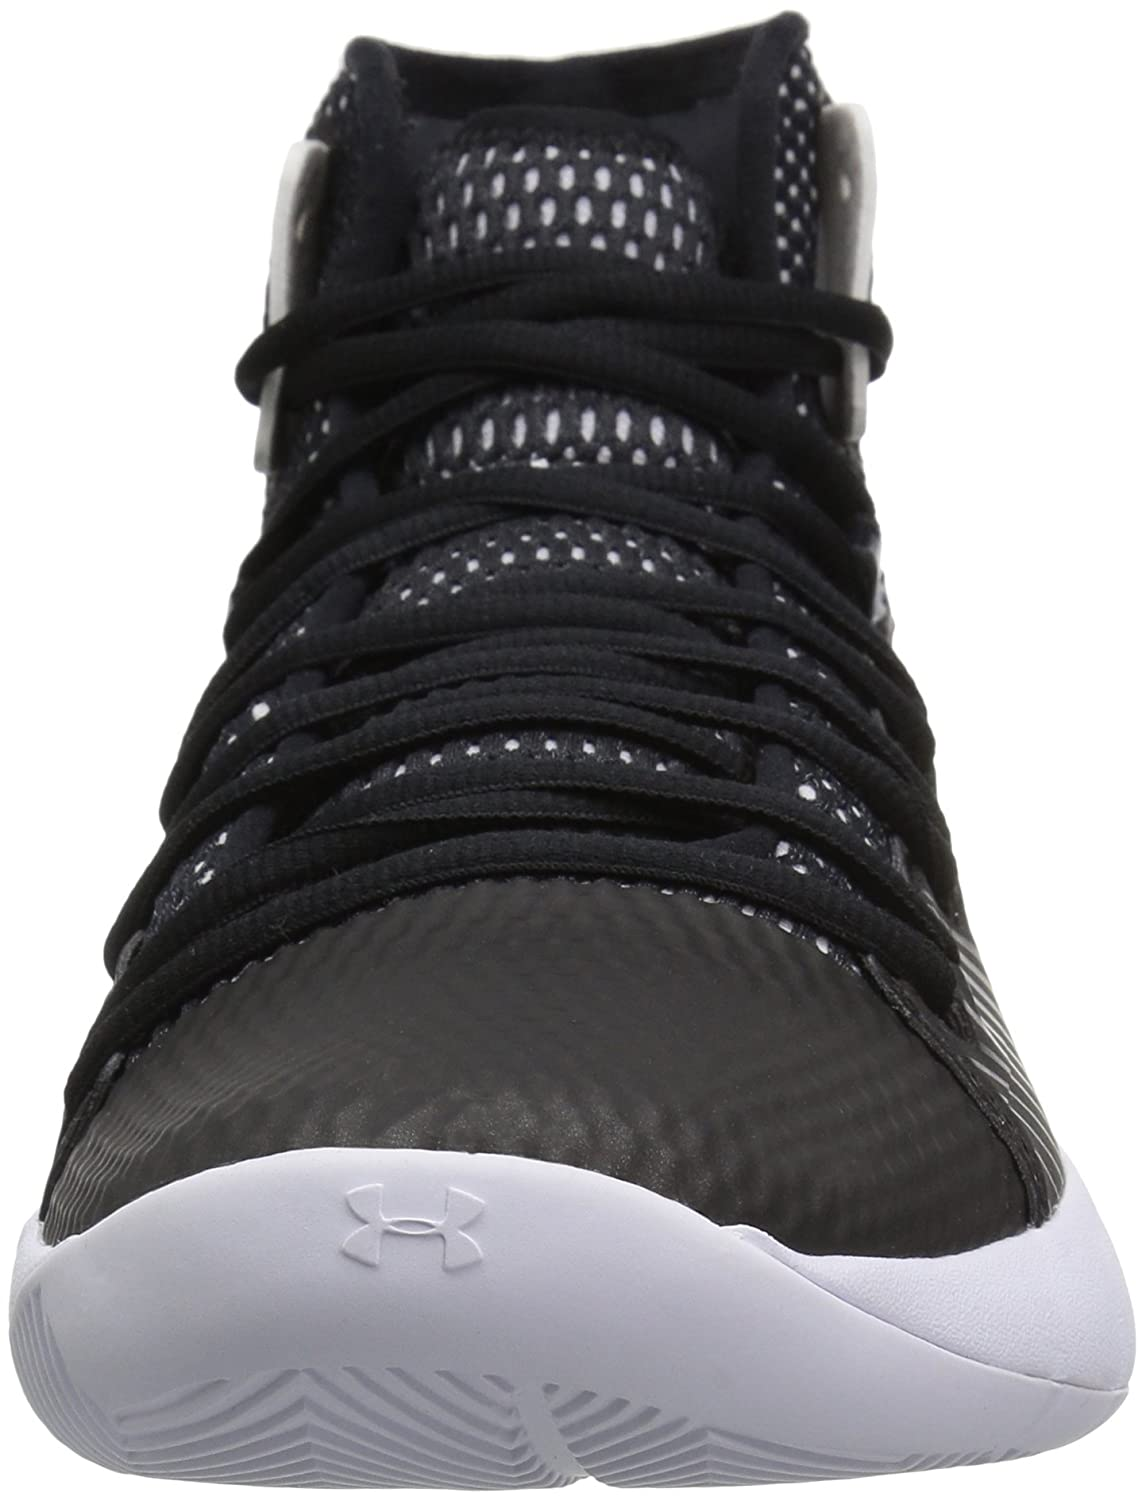 Under Armour Armour Armour Havoc Basketballschuh Herren  ec2a6e